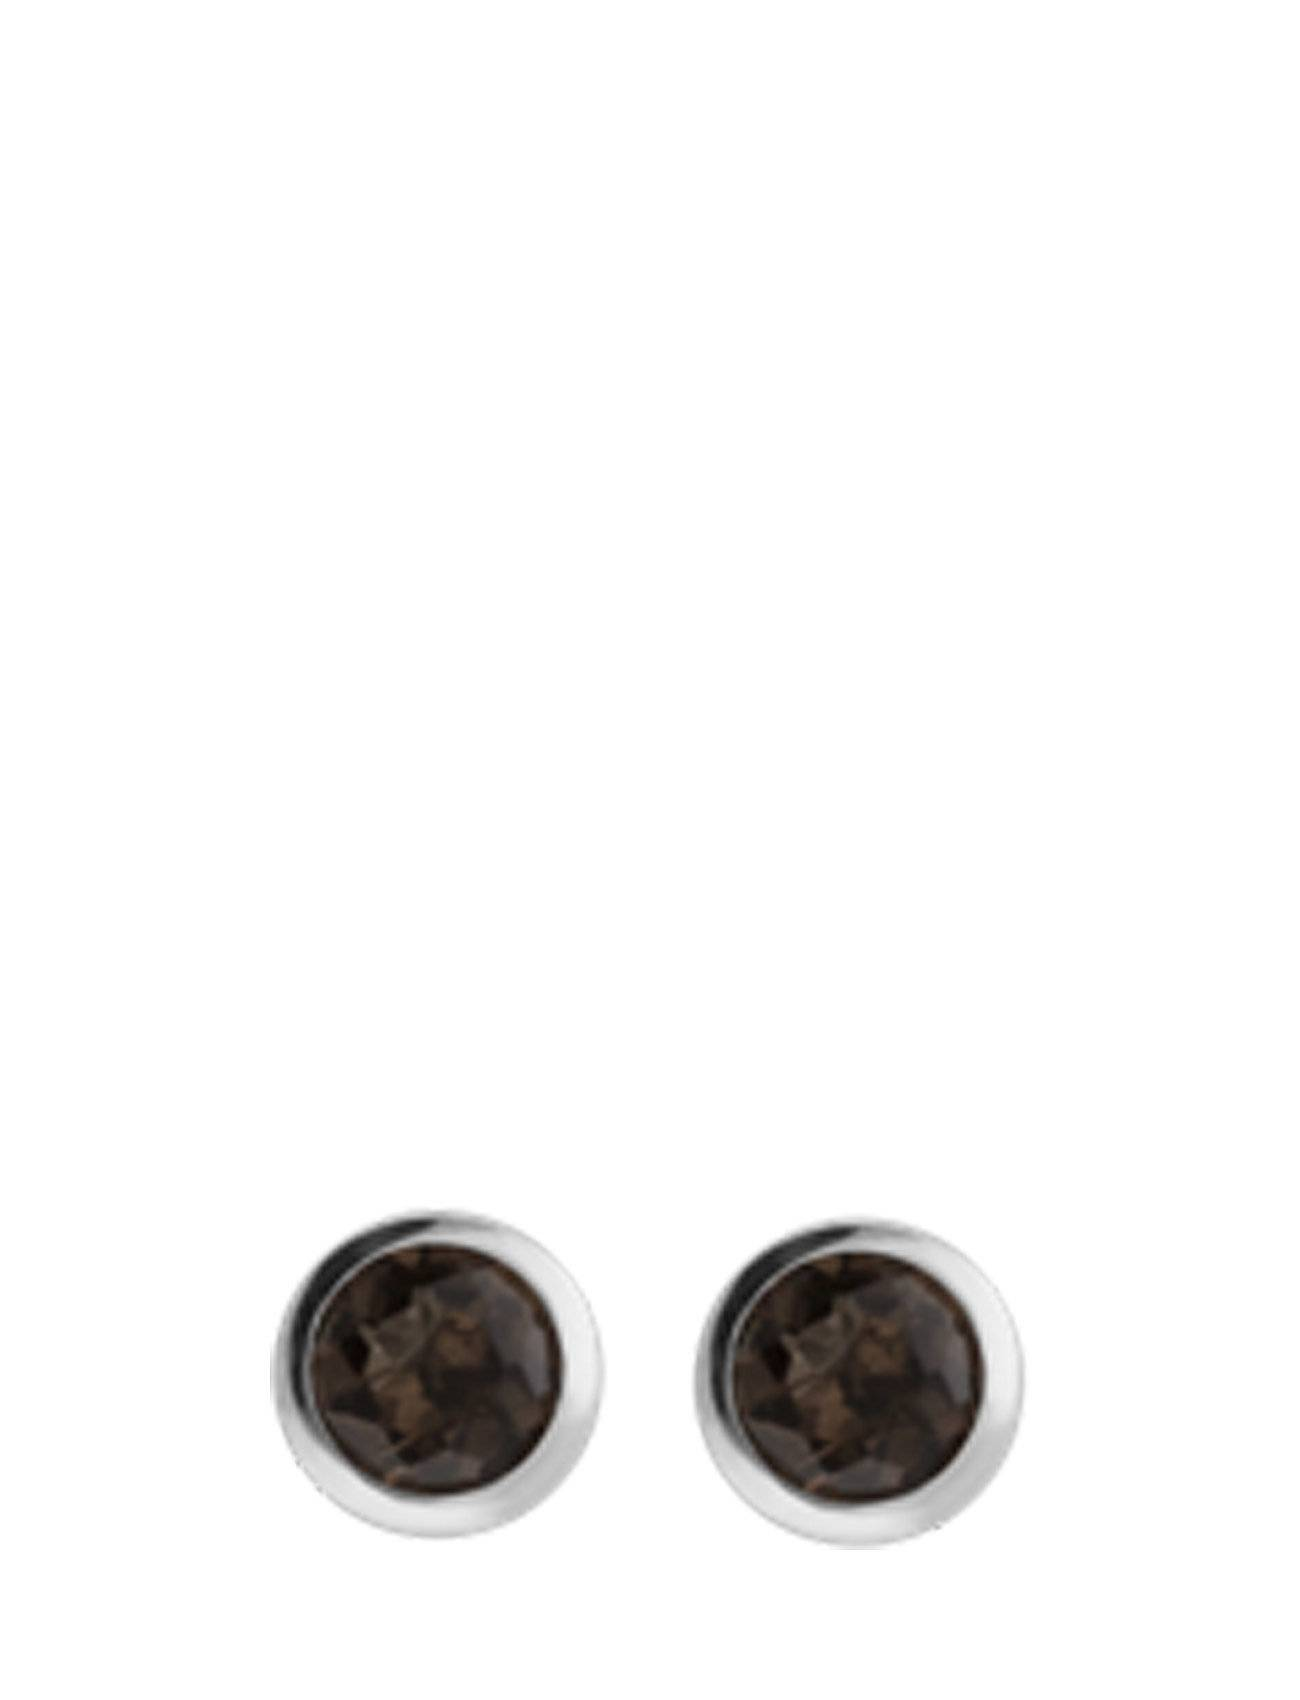 SOPHIE by SOPHIE Mini Stone Studs